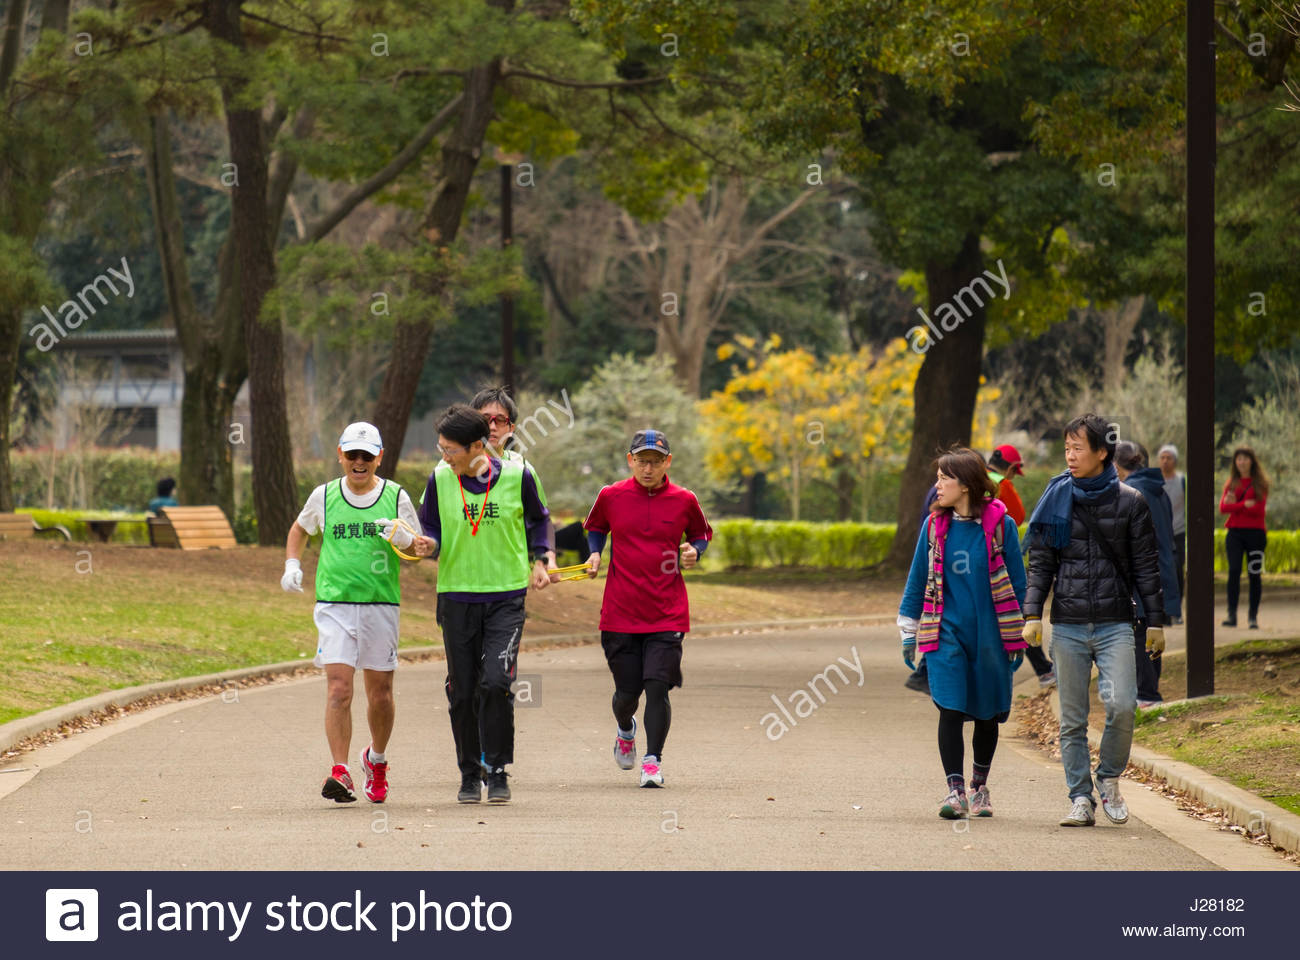 Man leading vision impaired man on a run by guiding him with a loop of cord they both hold in Yoyogi Park, Shibuya, - Stock Image